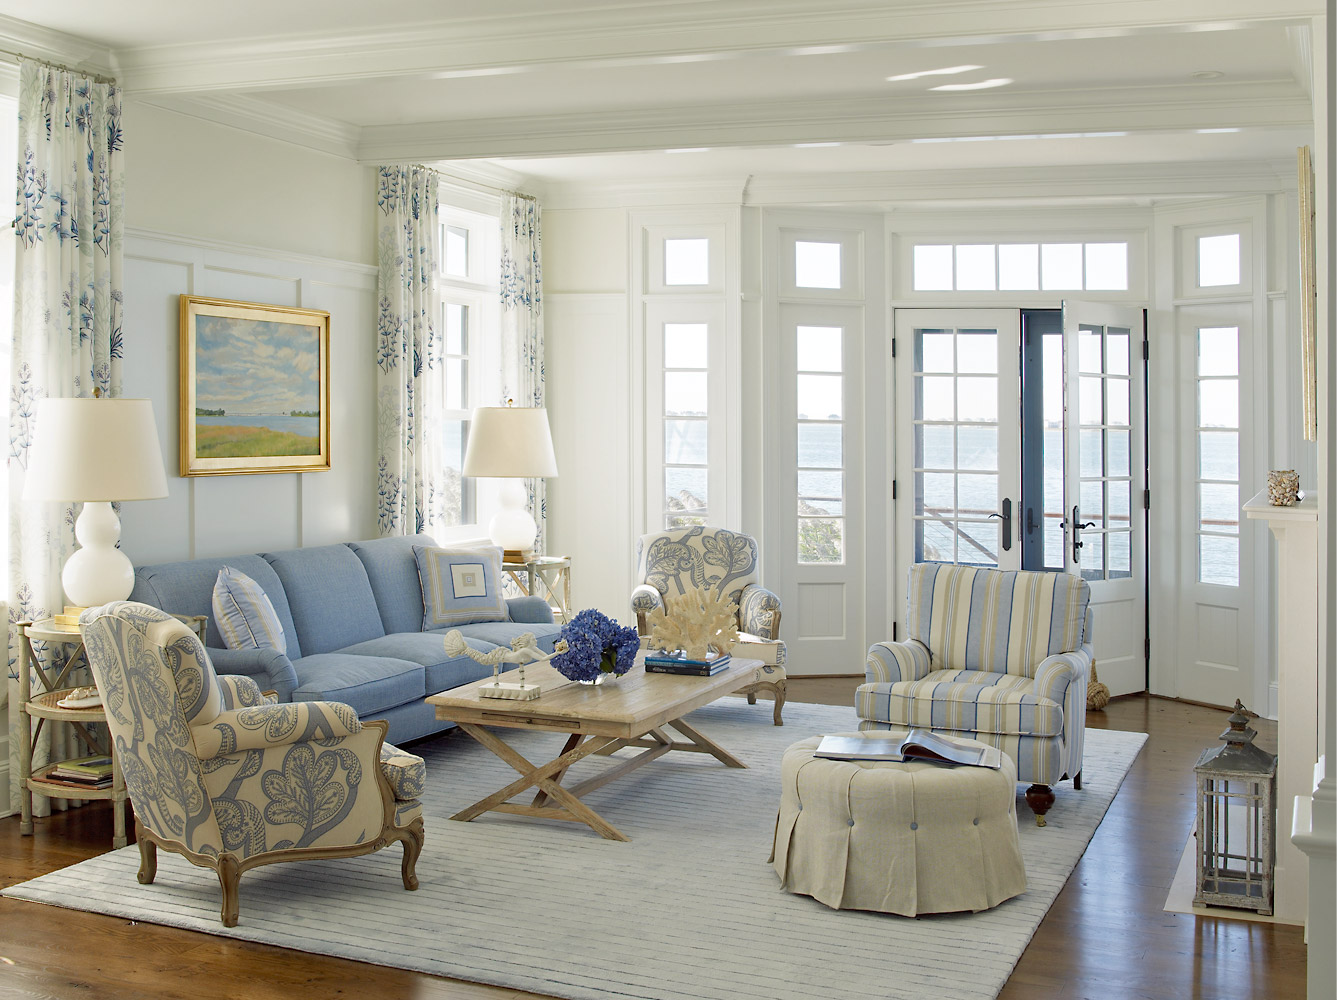 Decor inspiration nautical house on the bay cool chic for Interior designs for beach houses